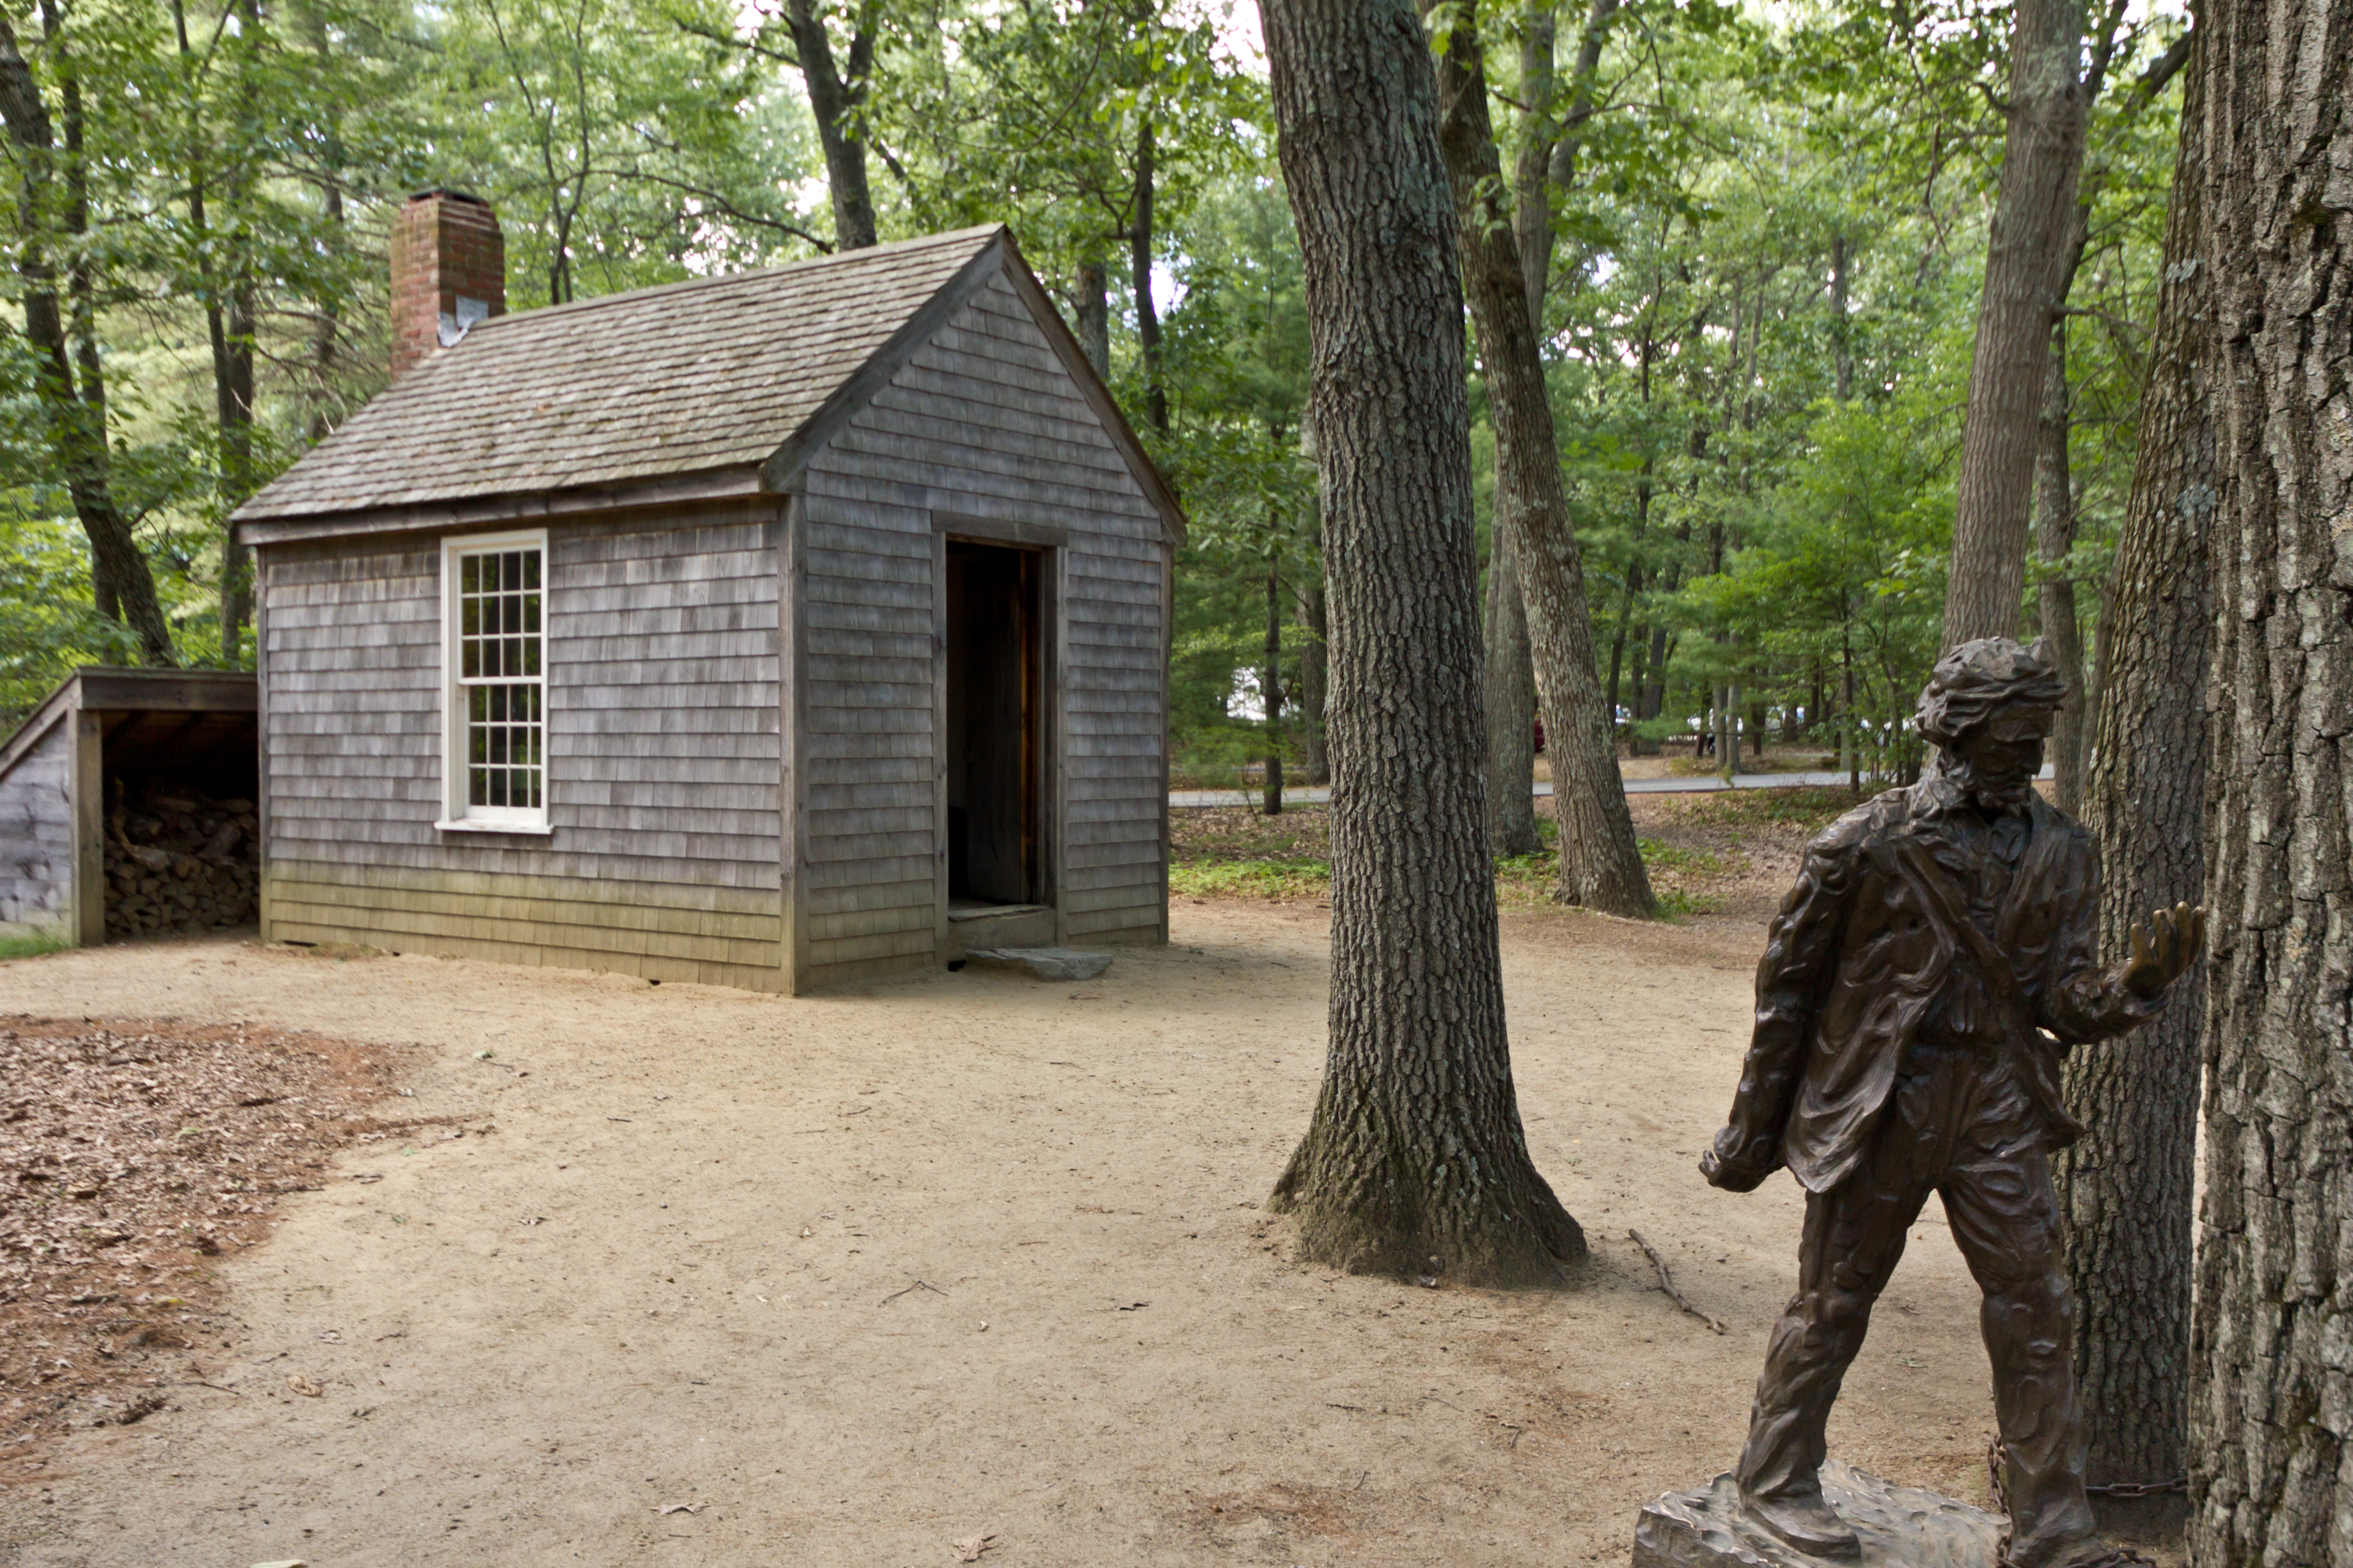 thoreau walden essay questions Transcendentalism essaysif a plant cannot live according to his nature when thoreau moved to walden pond continue reading this essay continue reading.